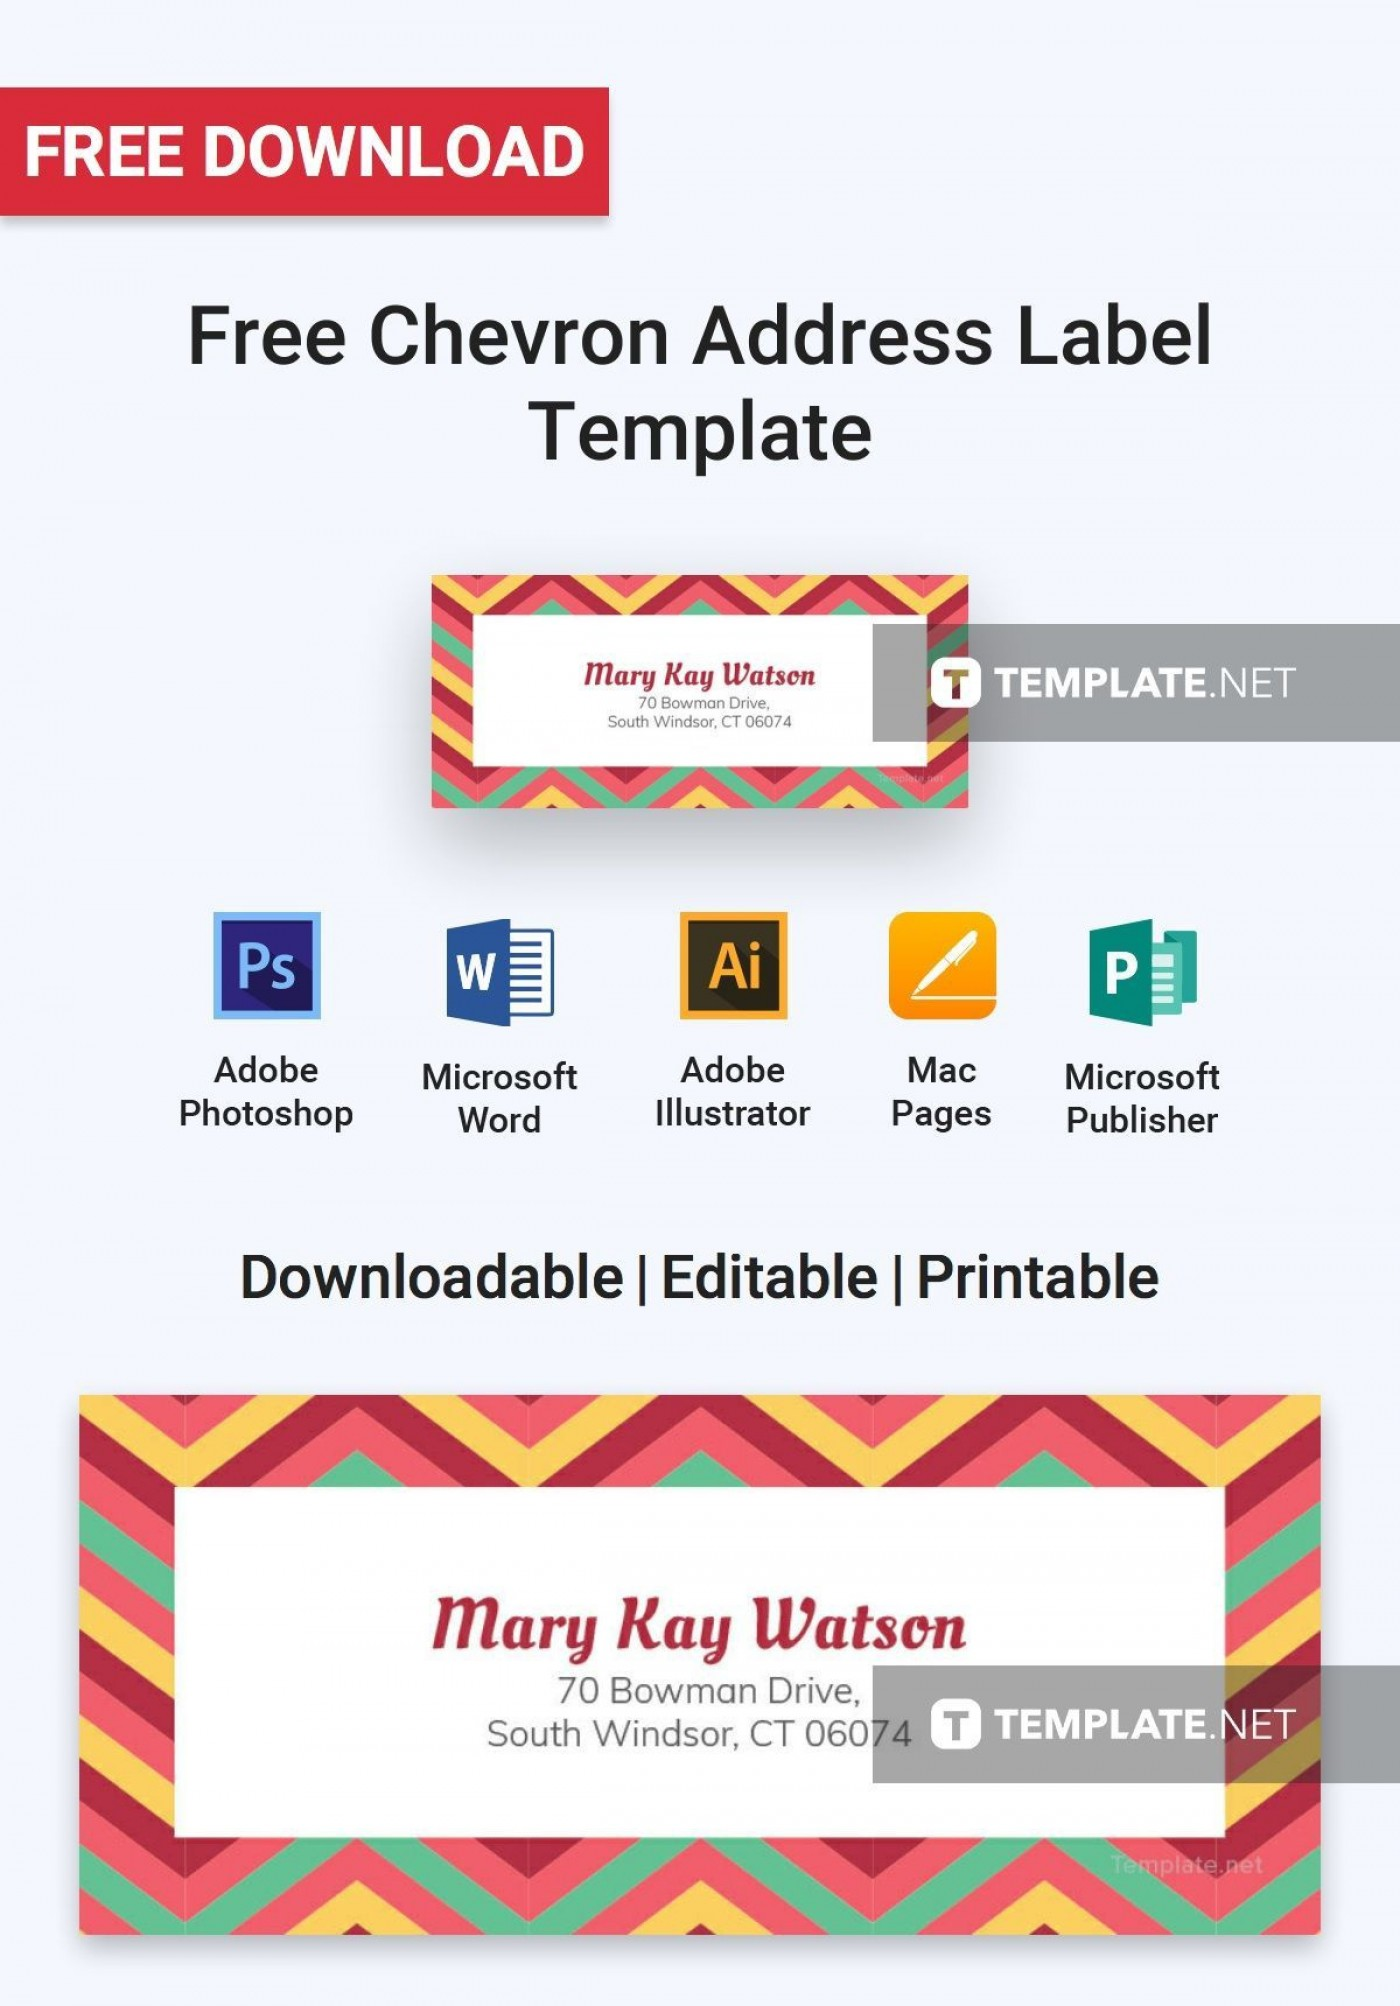 005 Breathtaking Addres Label Template For Mac Page Sample  Return Avery 51601400